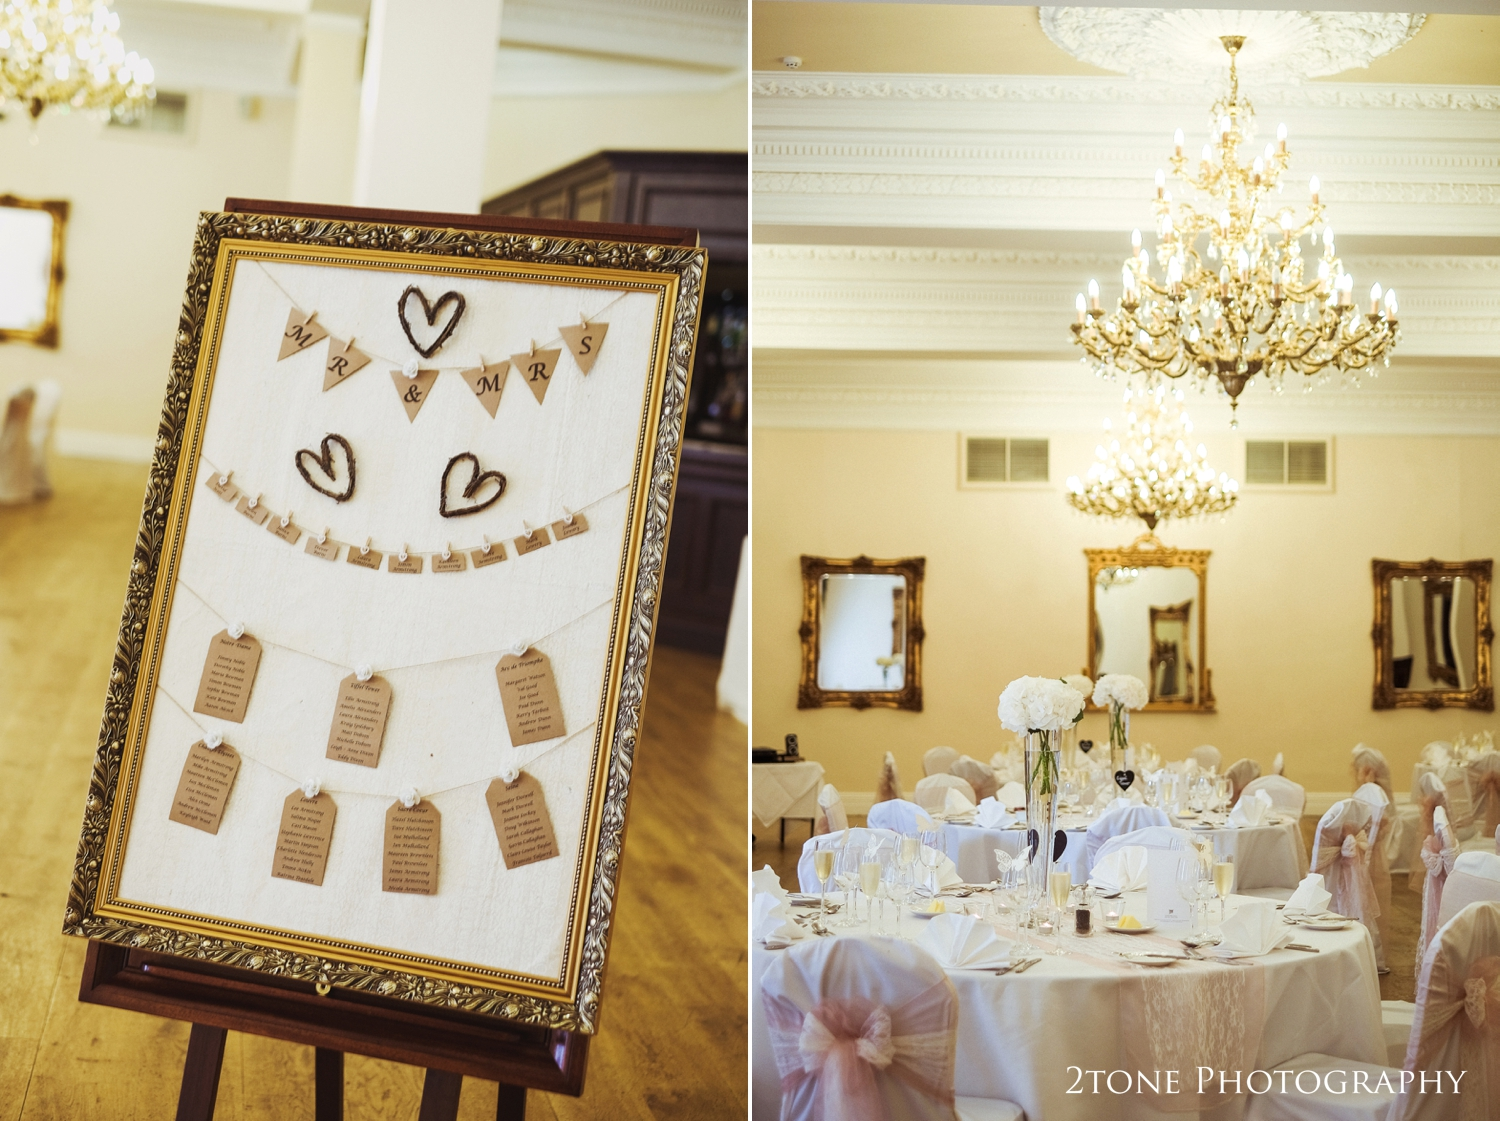 Laura and Simon chose a classic and fresh theme for their wedding breakfast using whitehydrangeasin tall glass vases, lace table runners and chair tiesand chalk board table names.